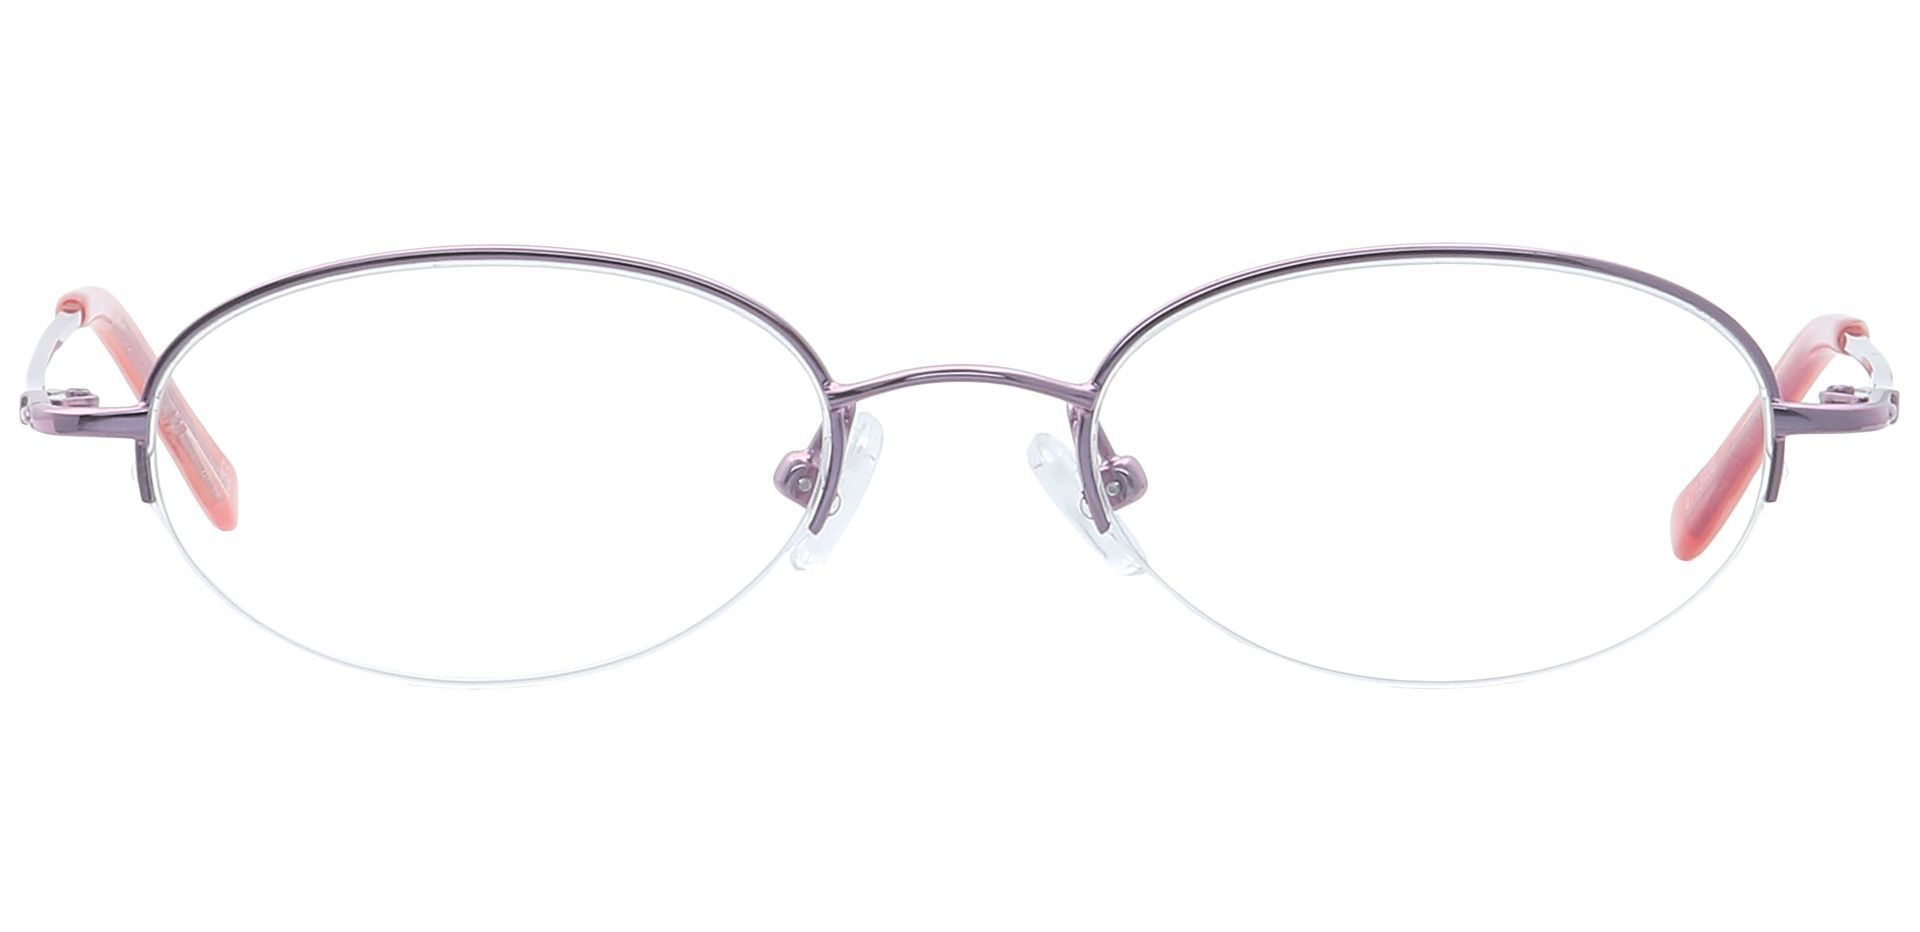 Nicole Oval Blue Light Blocking Glasses - Pink